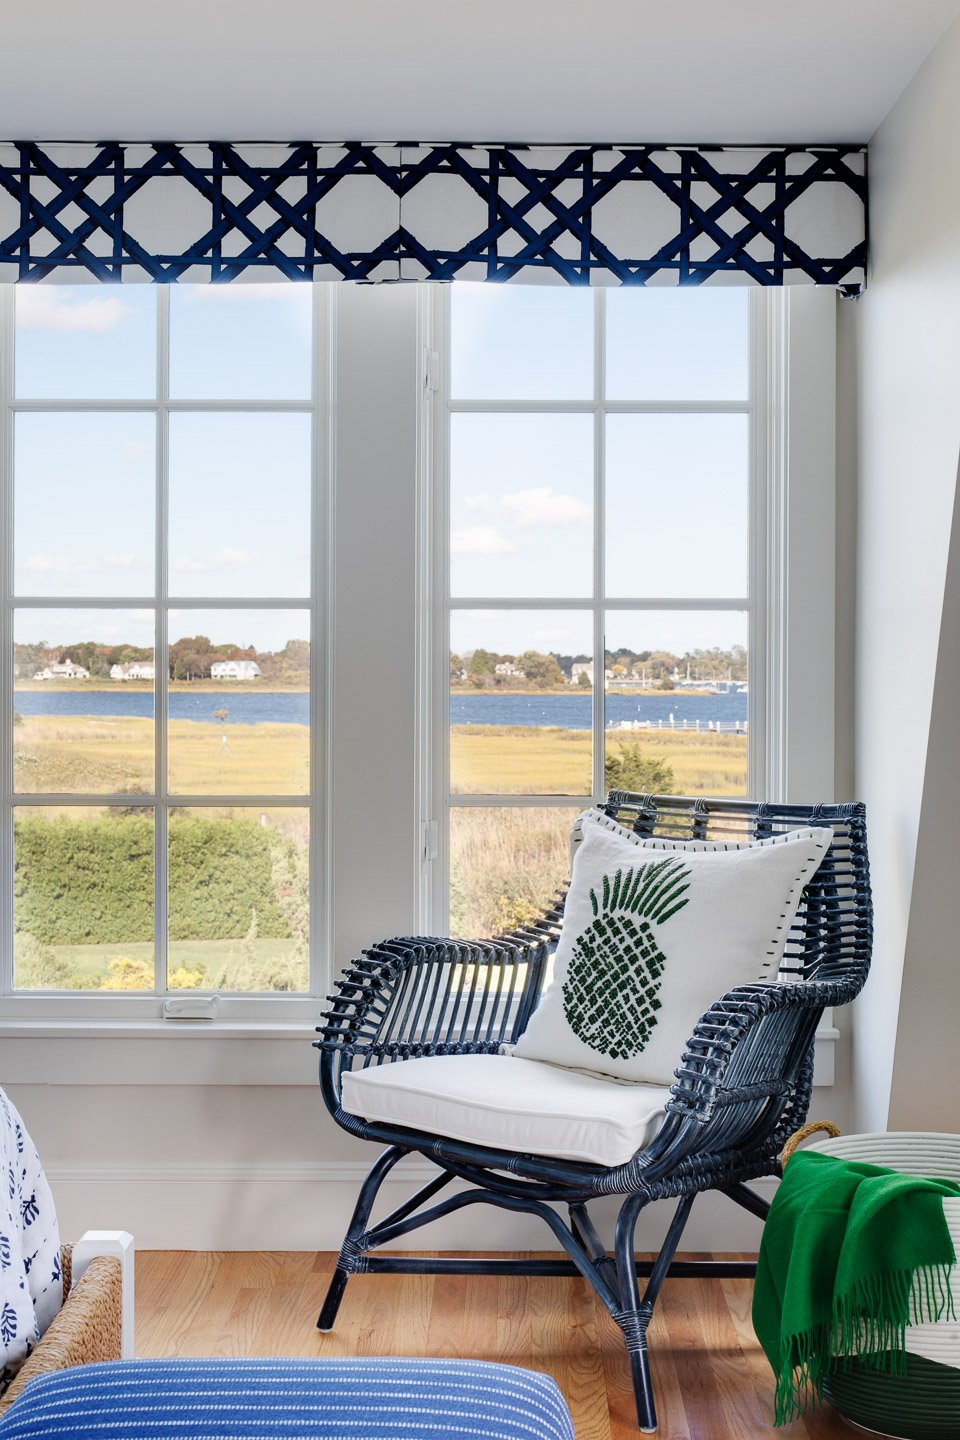 Blakely Interior Design - The Barrington Bay Project